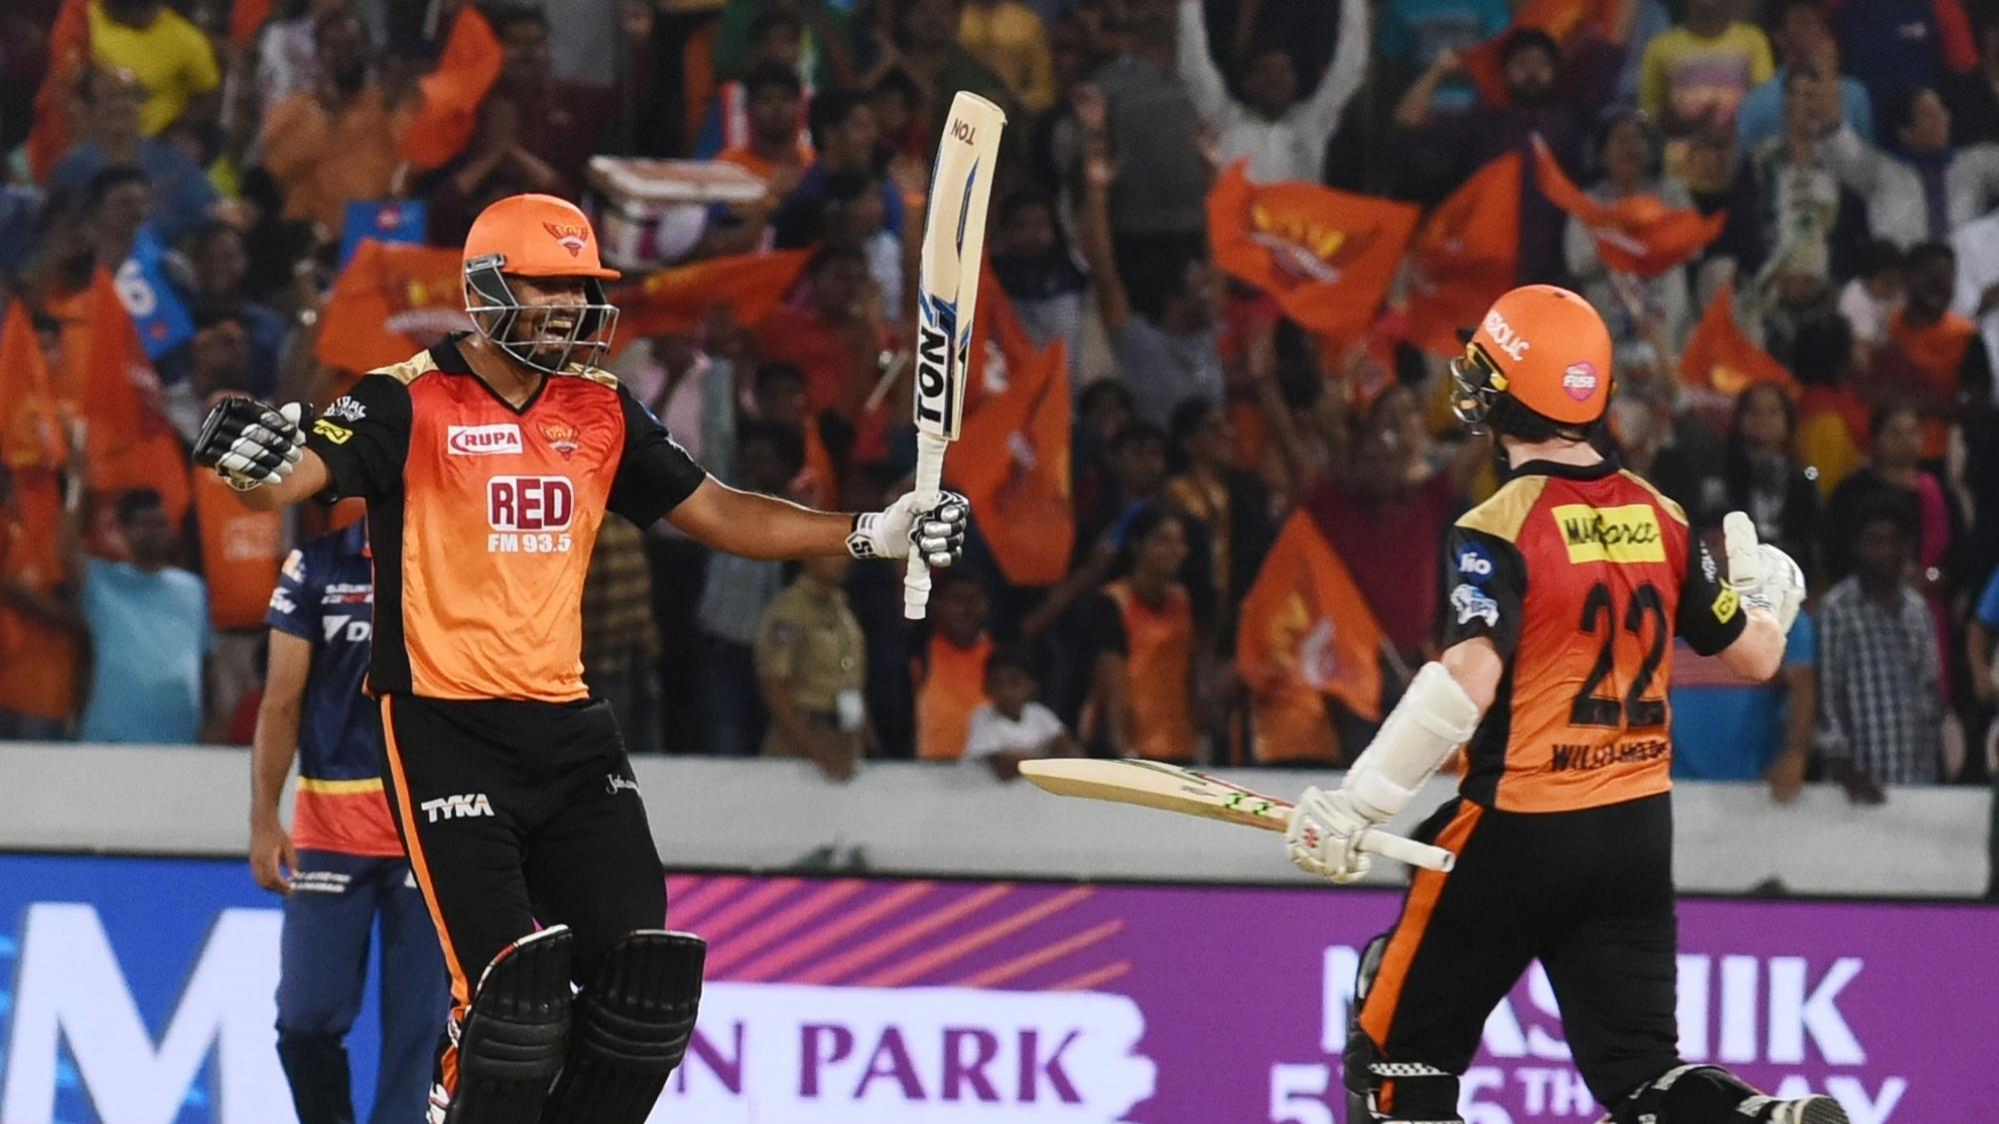 IPL 2018: Happy to have contributed to SRH's success, says Yusuf Pathan